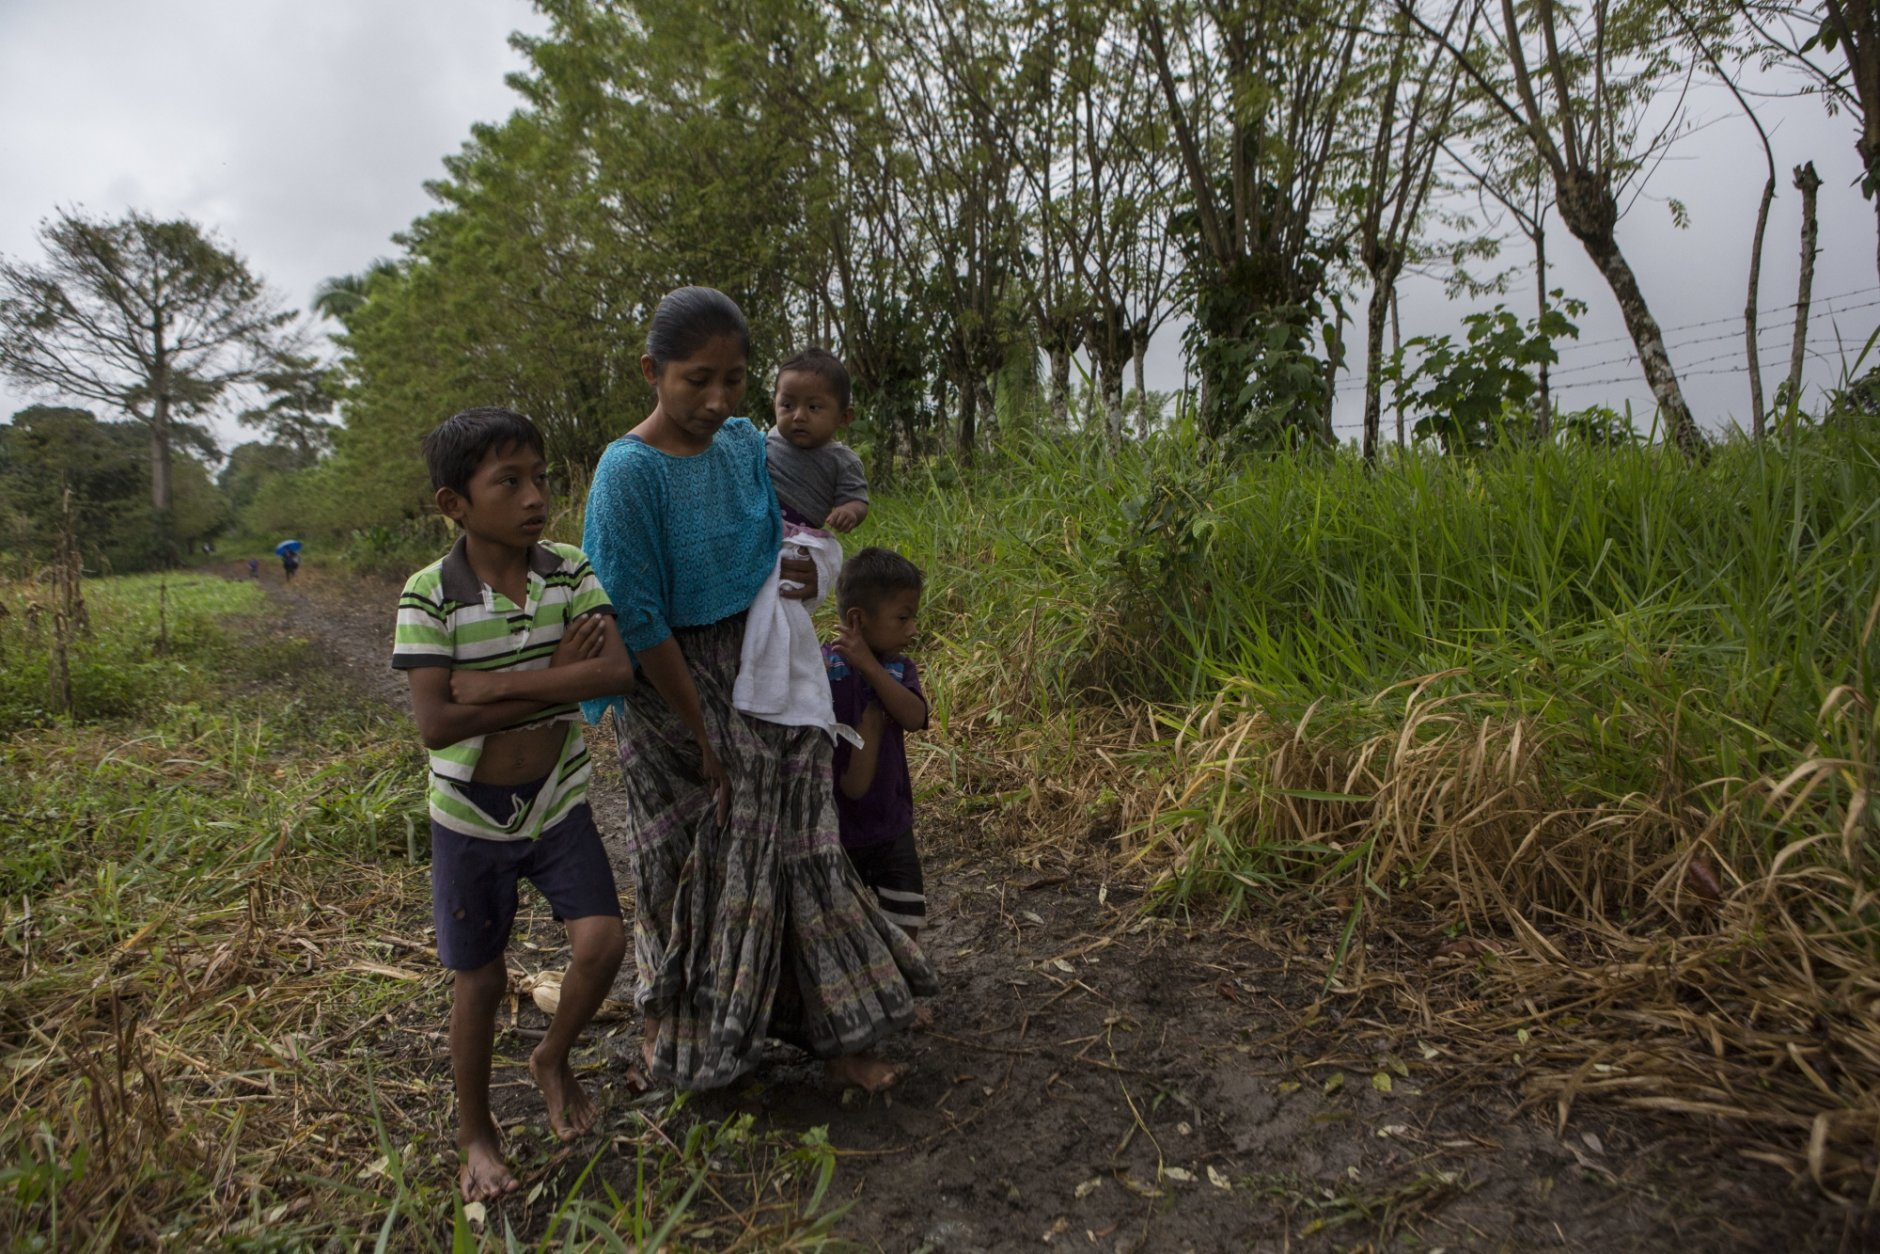 Claudia Maquin, 27, walks home with her three children, Abdel Johnatan Domingo Caal Maquin, 9, left, Angela Surely Mariela Caal Maquin, 6 months, middle, and Elvis Radamel Aquiles Caal Maquin, 5, right, in Raxruha, Guatemala, on Saturday, Dec. 15, 2018. Claudia Maquin's daughter, 7-year old Jakelin Amei Rosmery Caal, died in a Texas hospital, two days after being taken into custody by border patrol agents in a remote stretch of New Mexico desert. (AP Photo/Oliver de Ros)